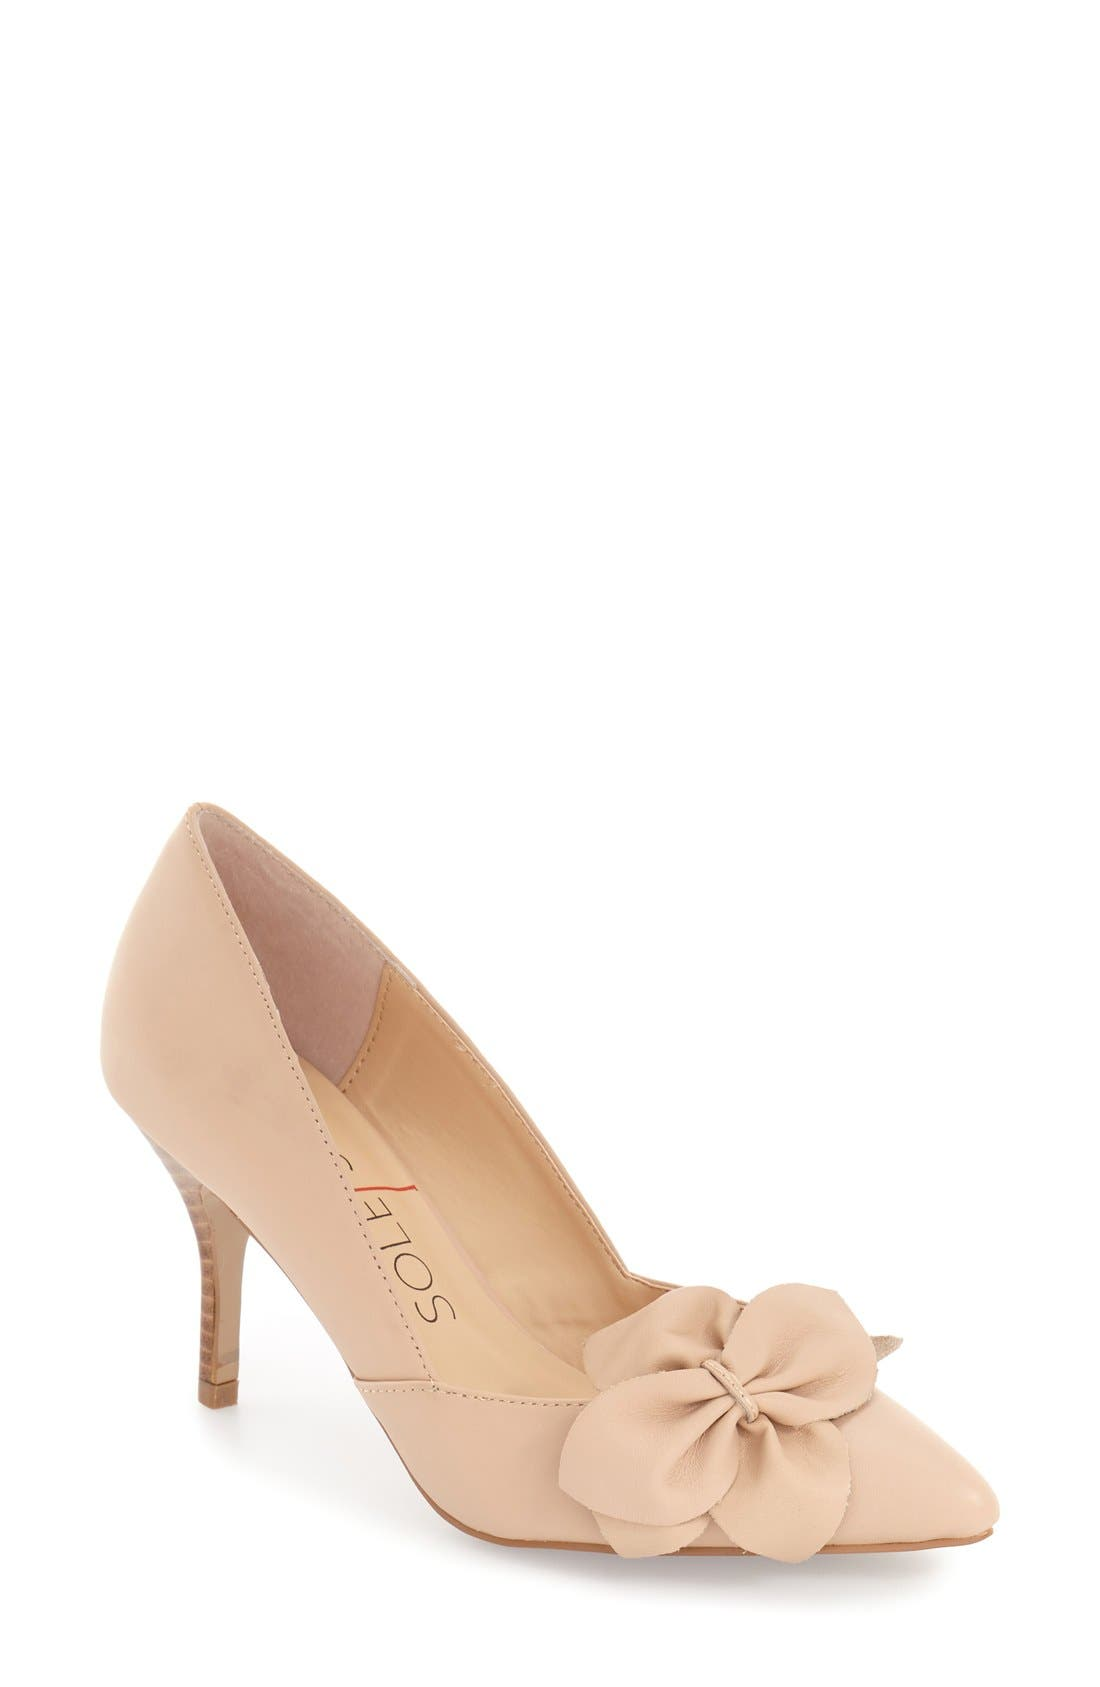 Alternate Image 1 Selected - Sole Society 'Aveline' Pointy Toe Pump (Women)